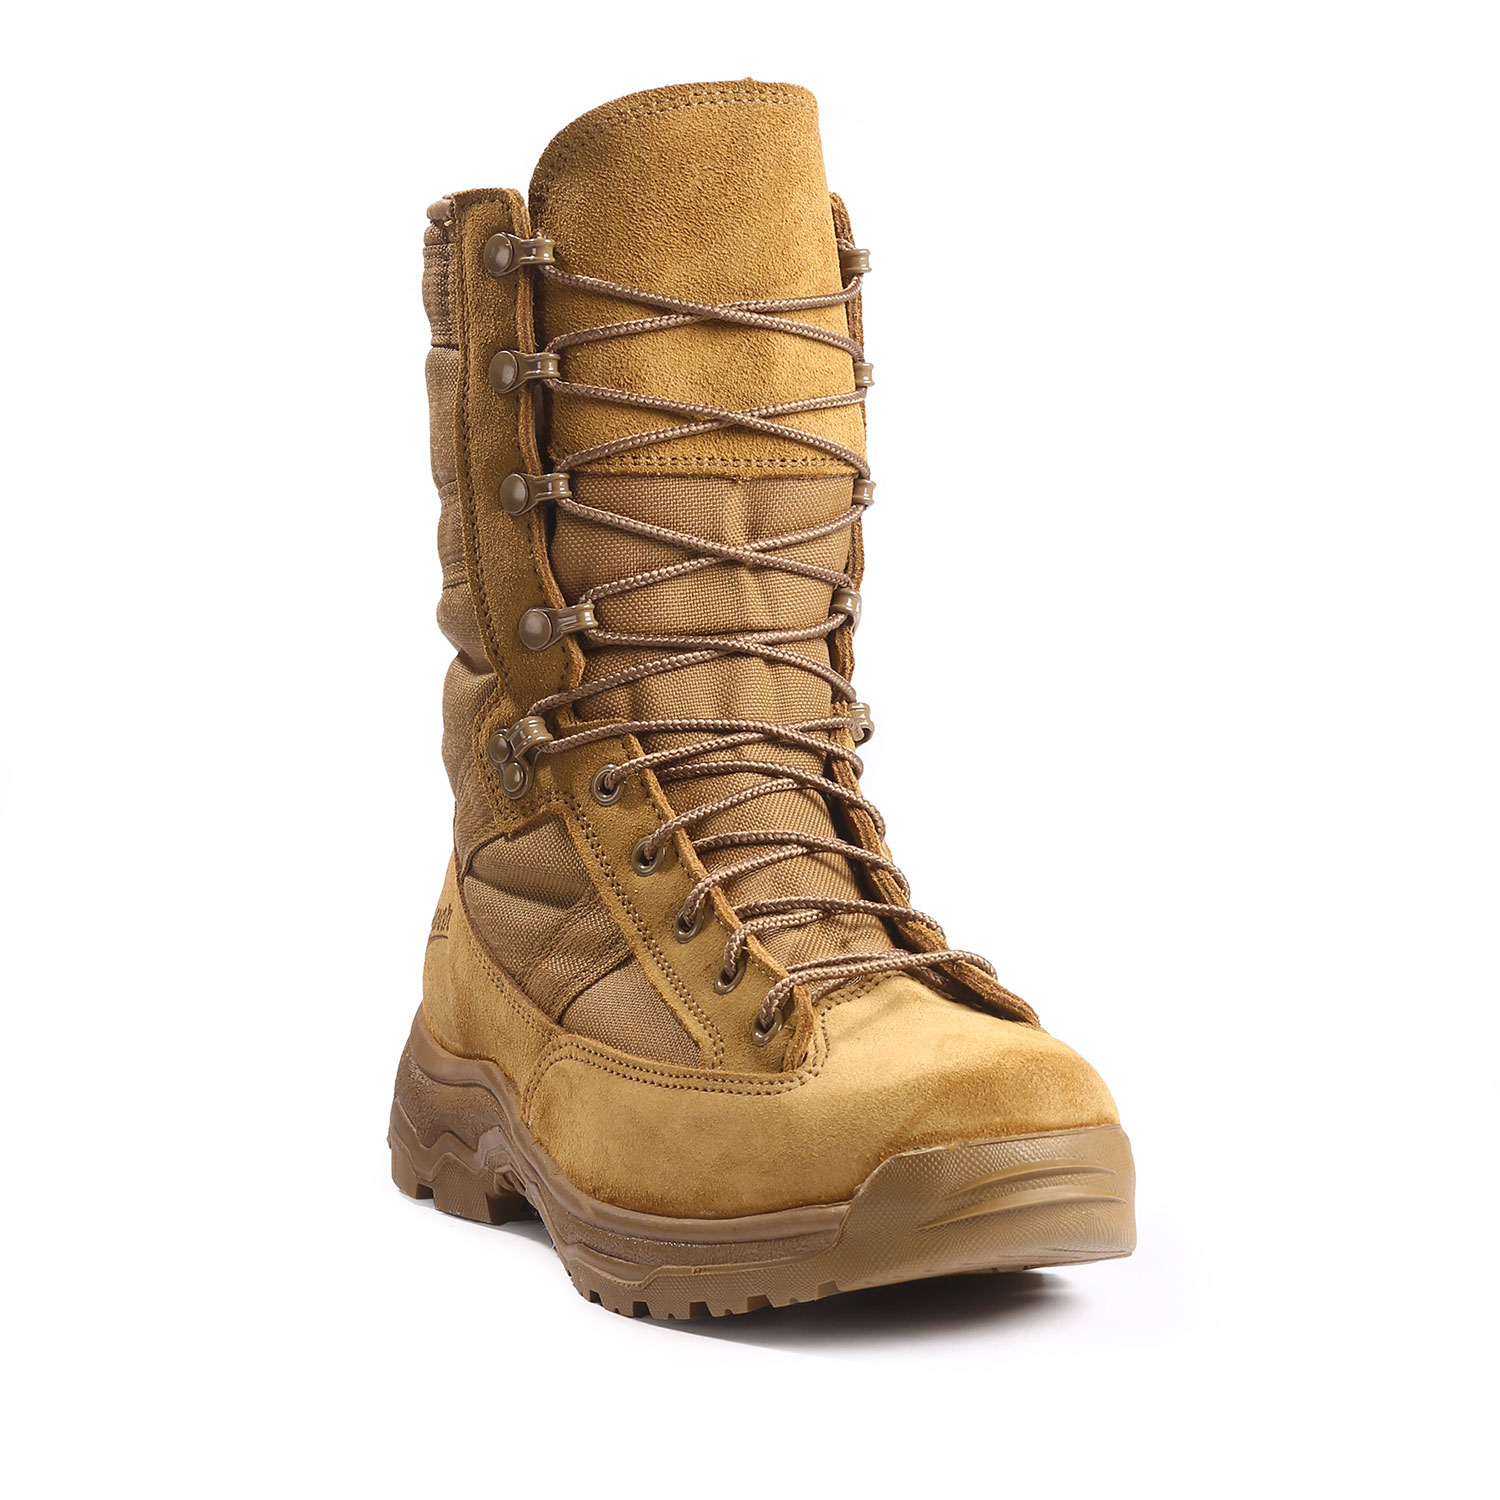 "fa2c69a0633 Danner Reckoning Coyote Hot 8"" Duty Boot."